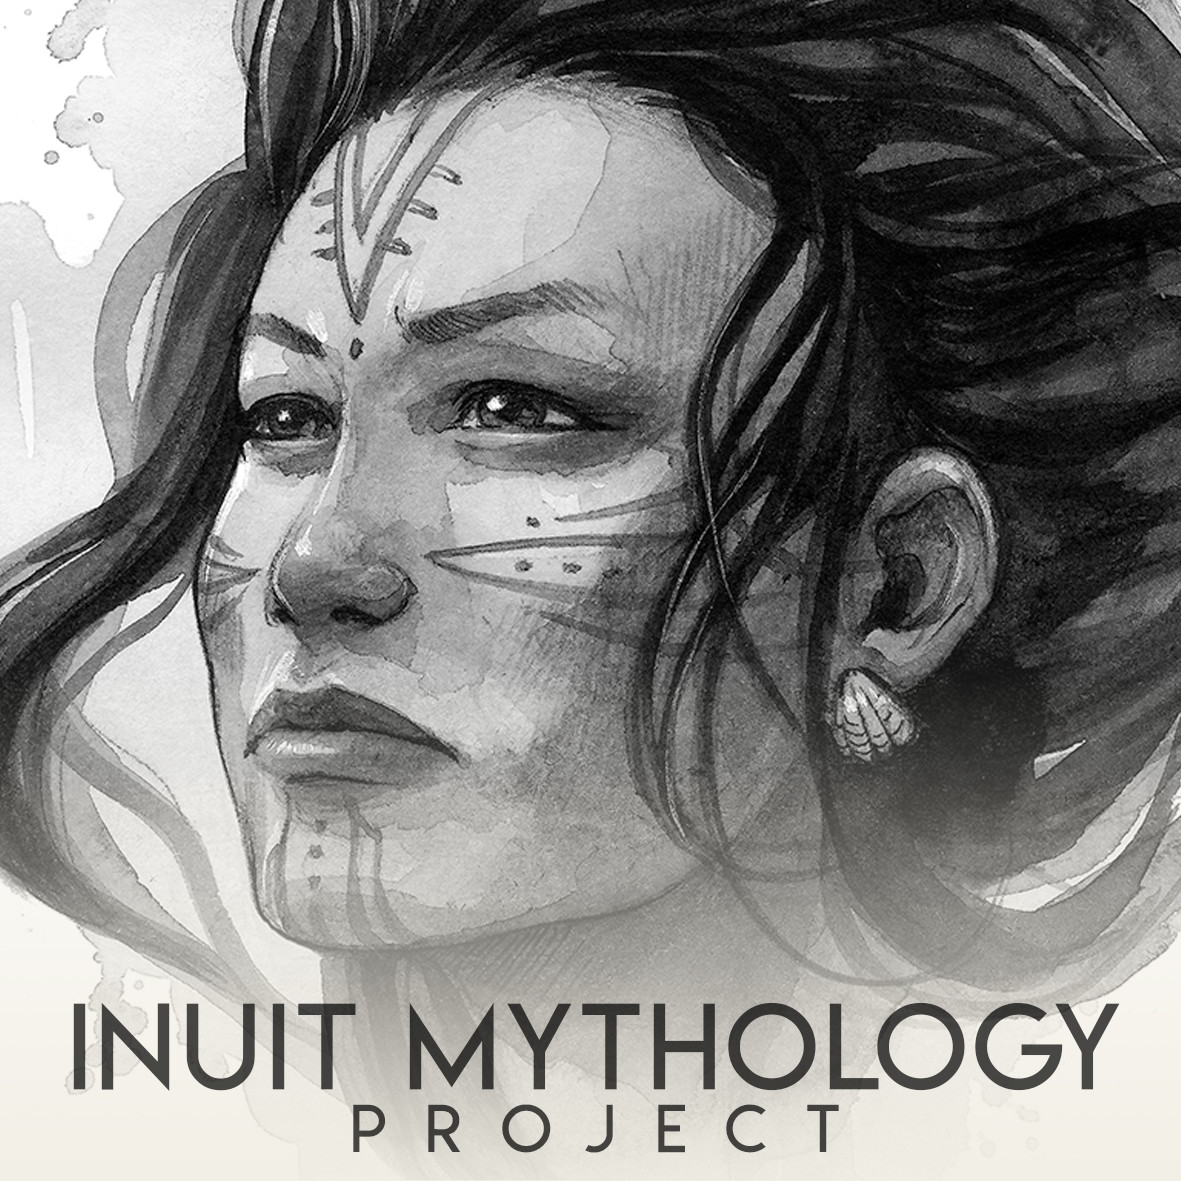 Inuit Mythology Project